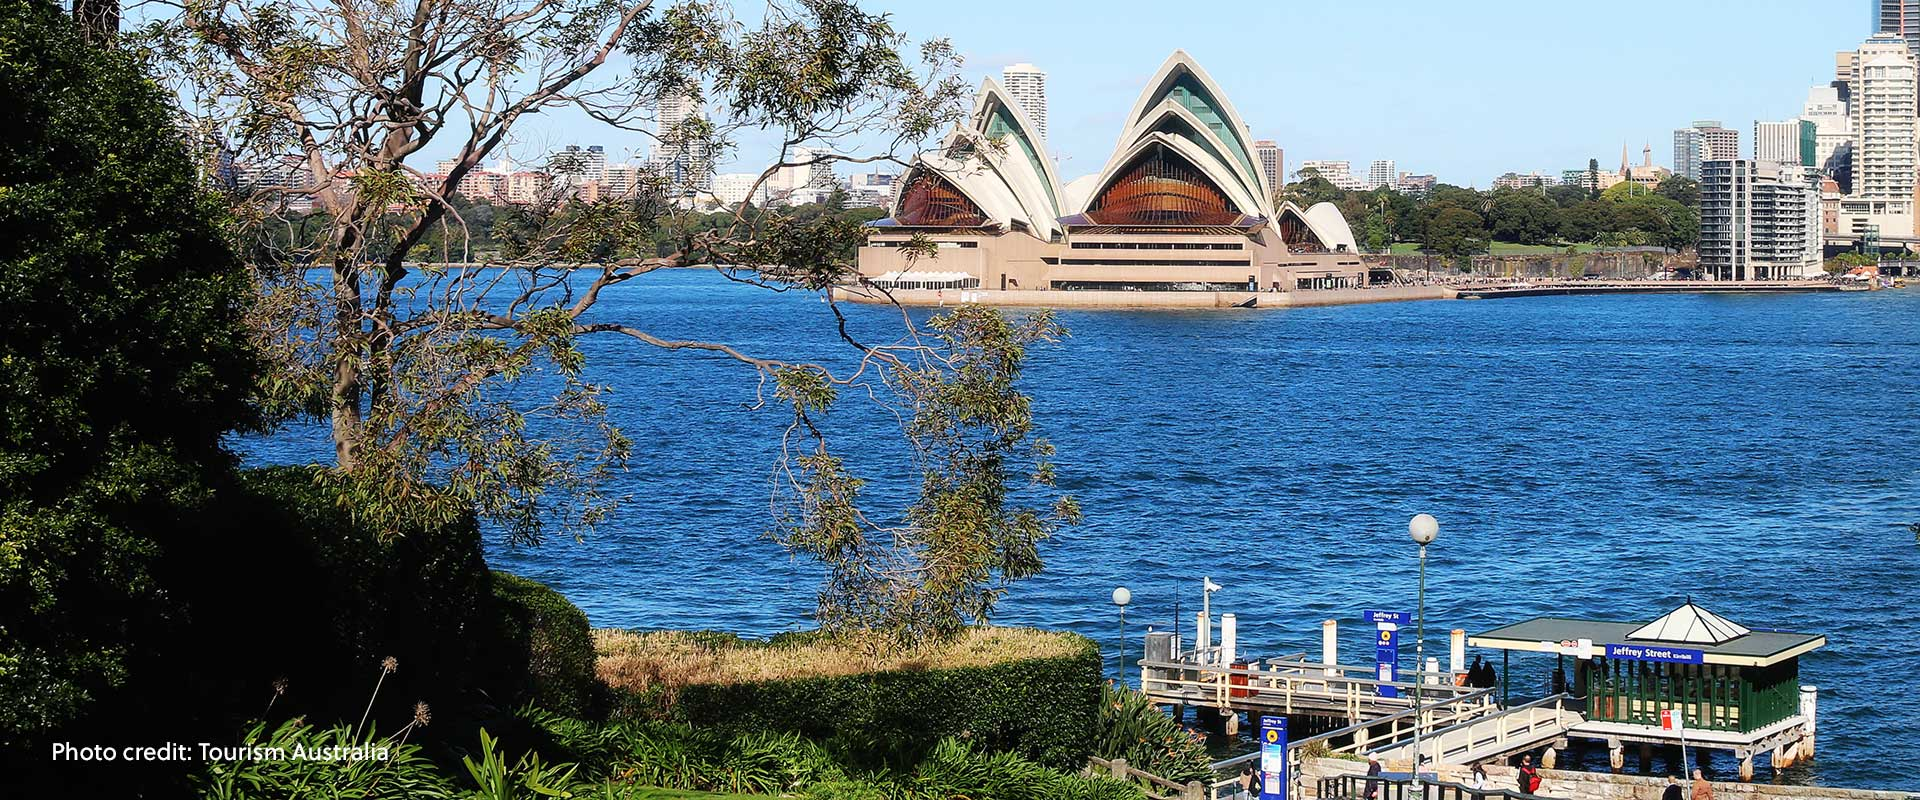 Sydney Opera House, Sydney, New South Wales, Australia.